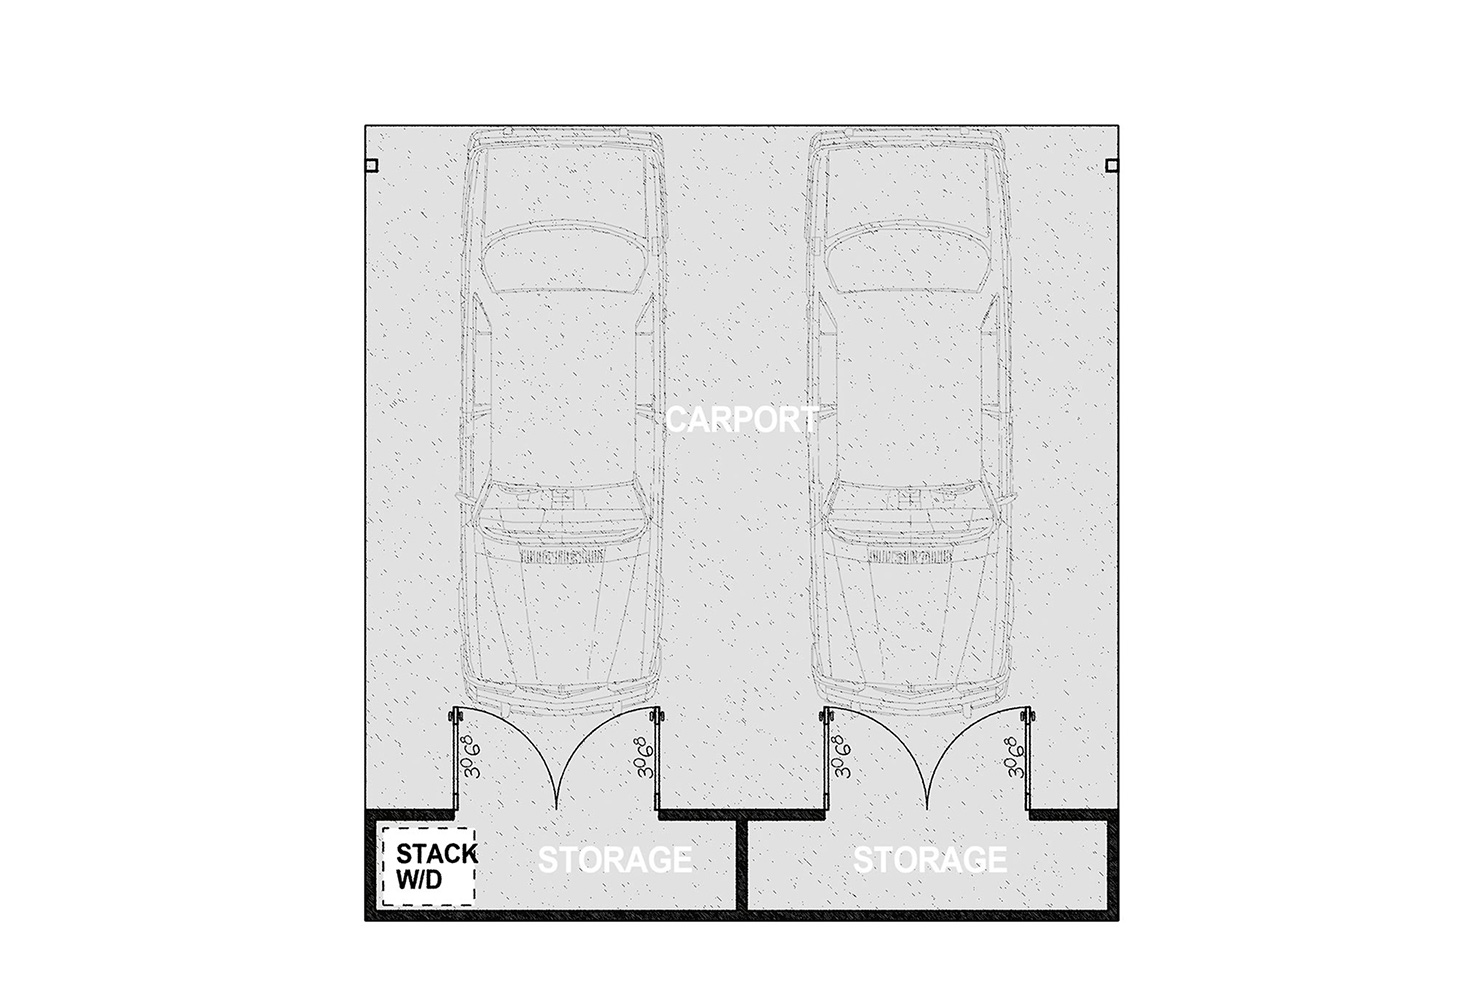 HMCP - Parking for two vehicles on a 510 square foot concrete slab and two ample storage closets.